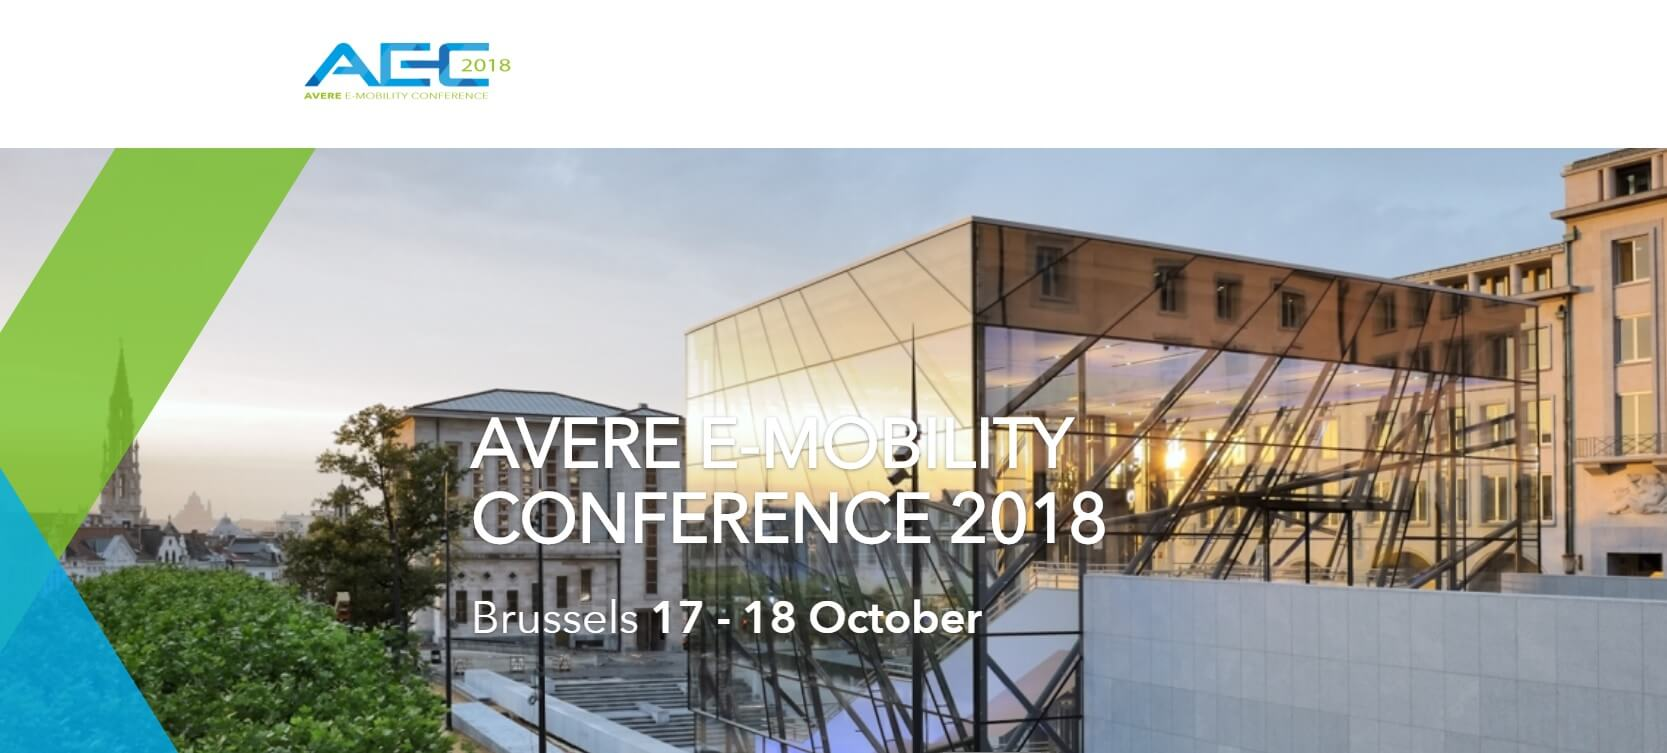 avere mobility conference 2018 (1)